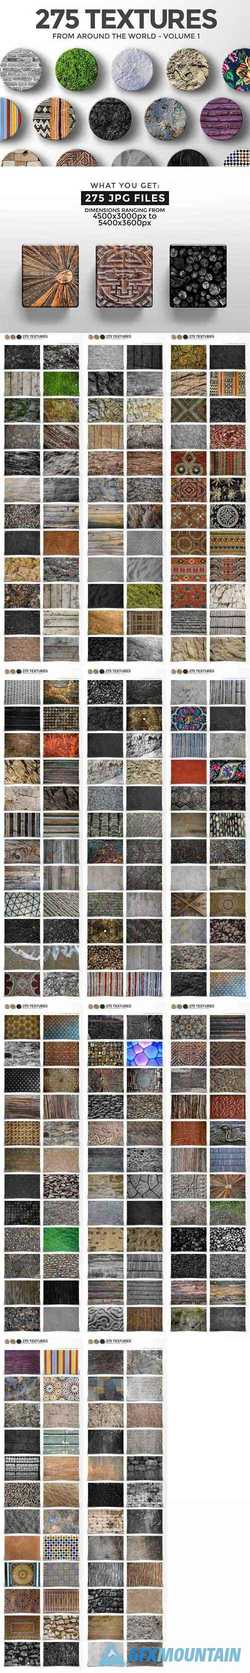 275 TEXTURES FROM AROUND THE WORLD - 1788384